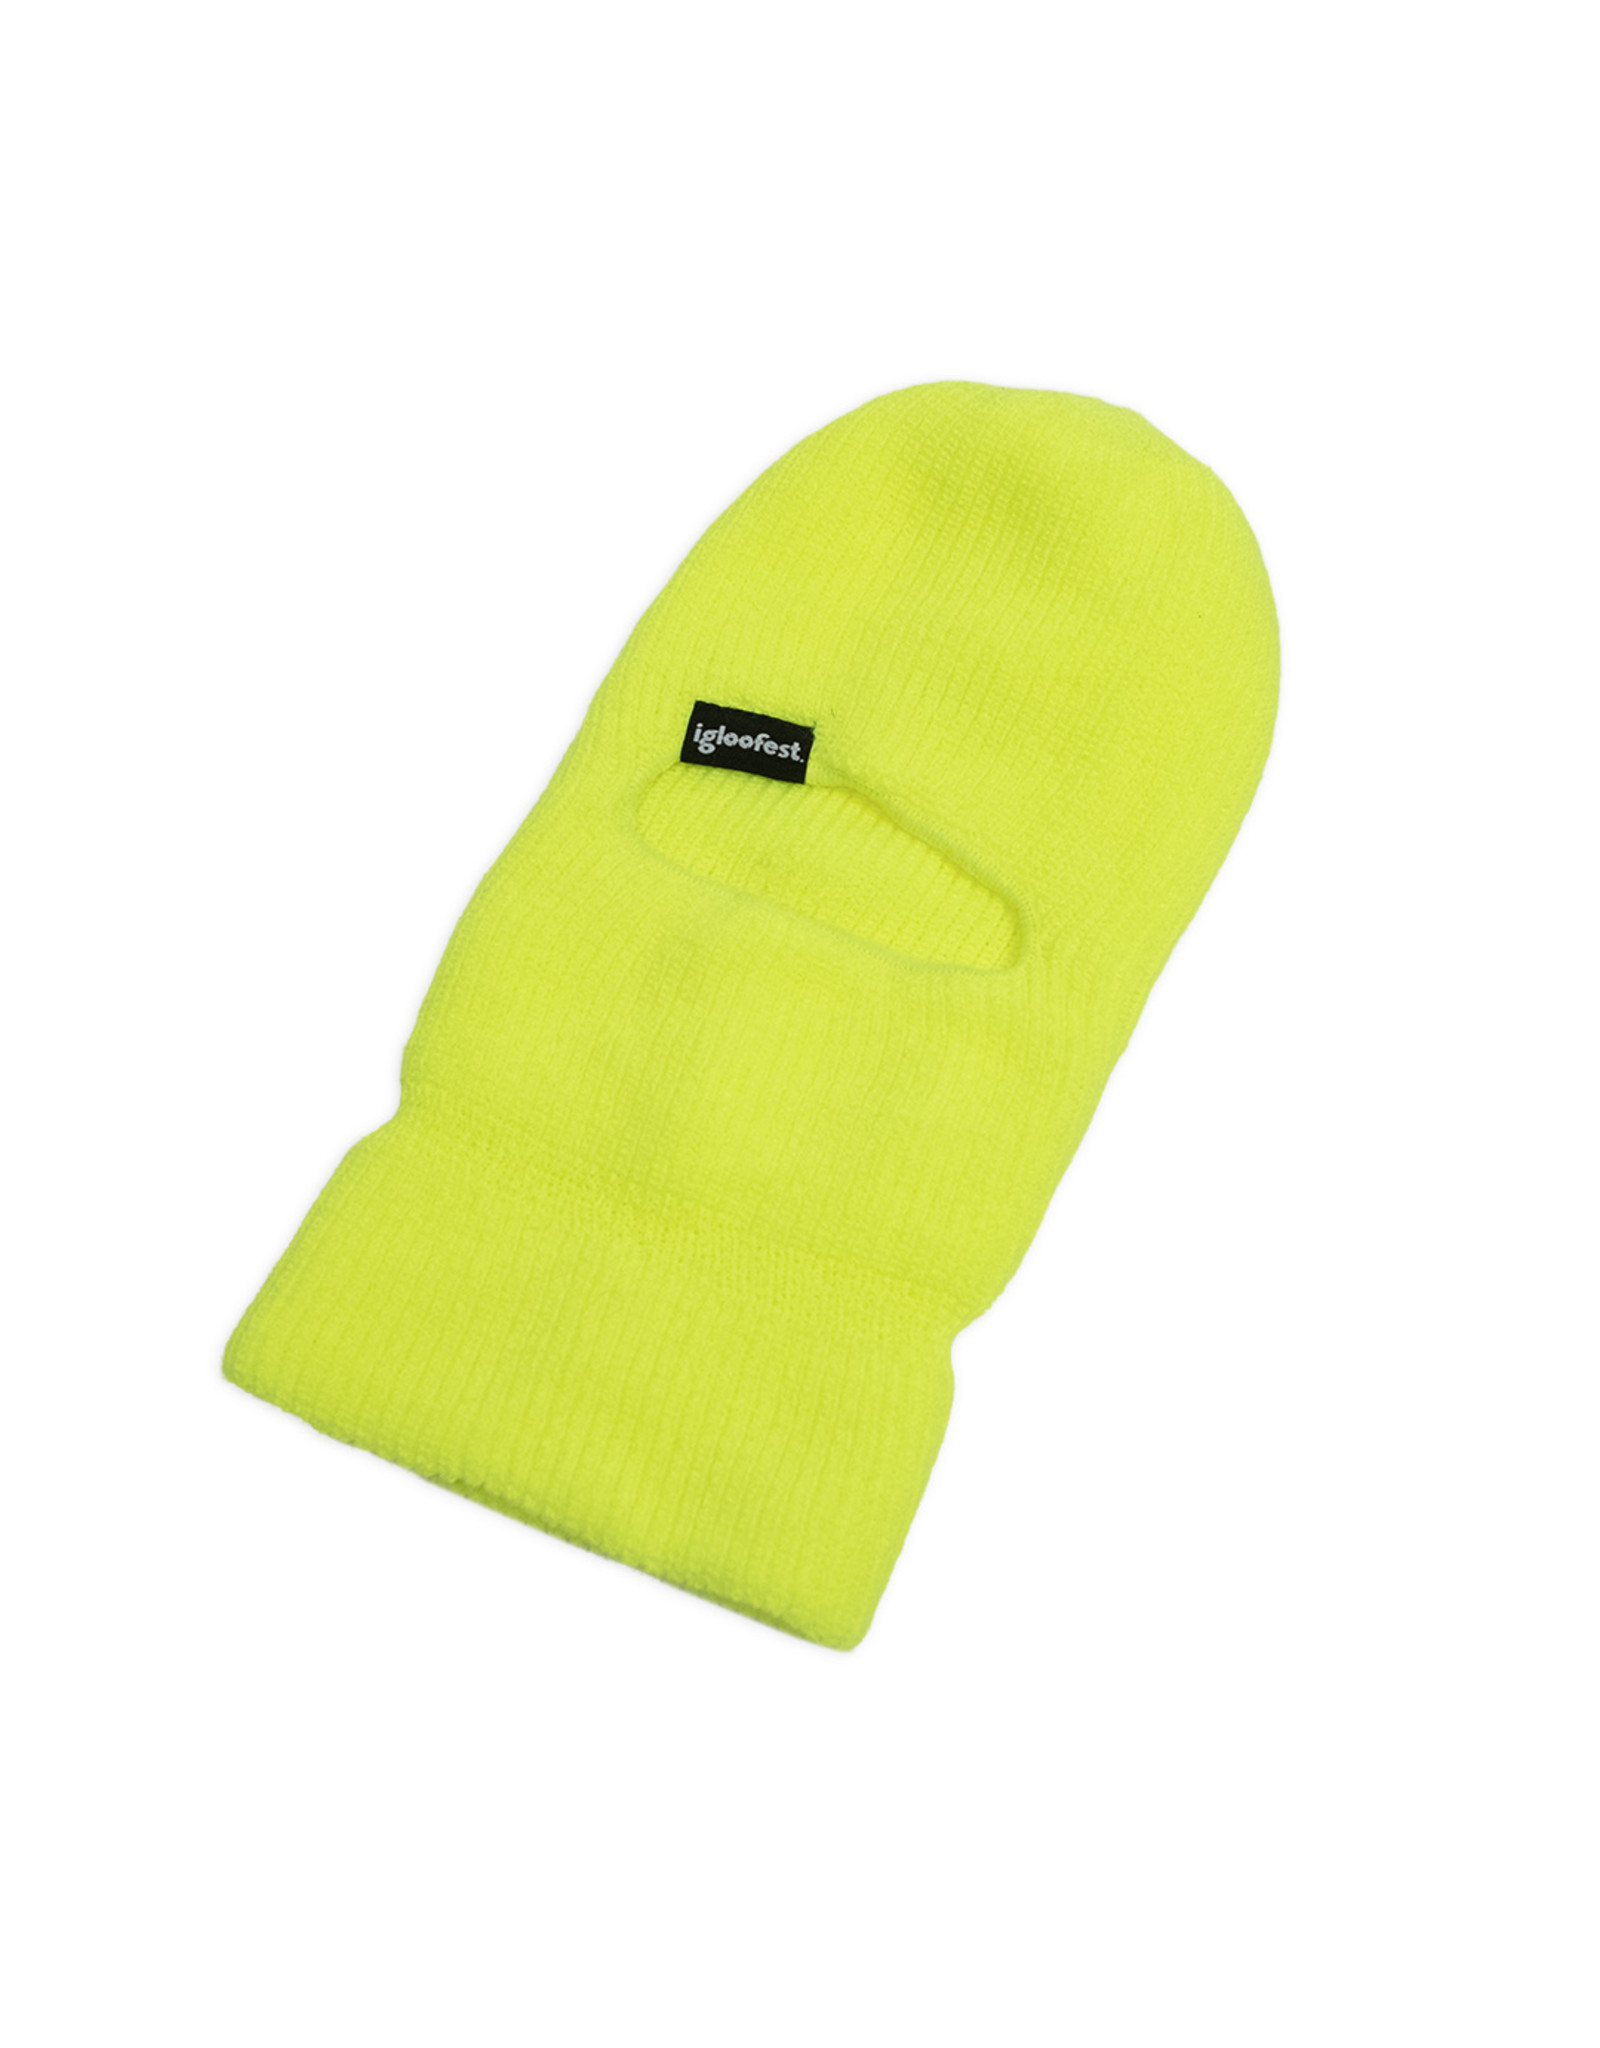 Cagoule Jaune | Collection 2020